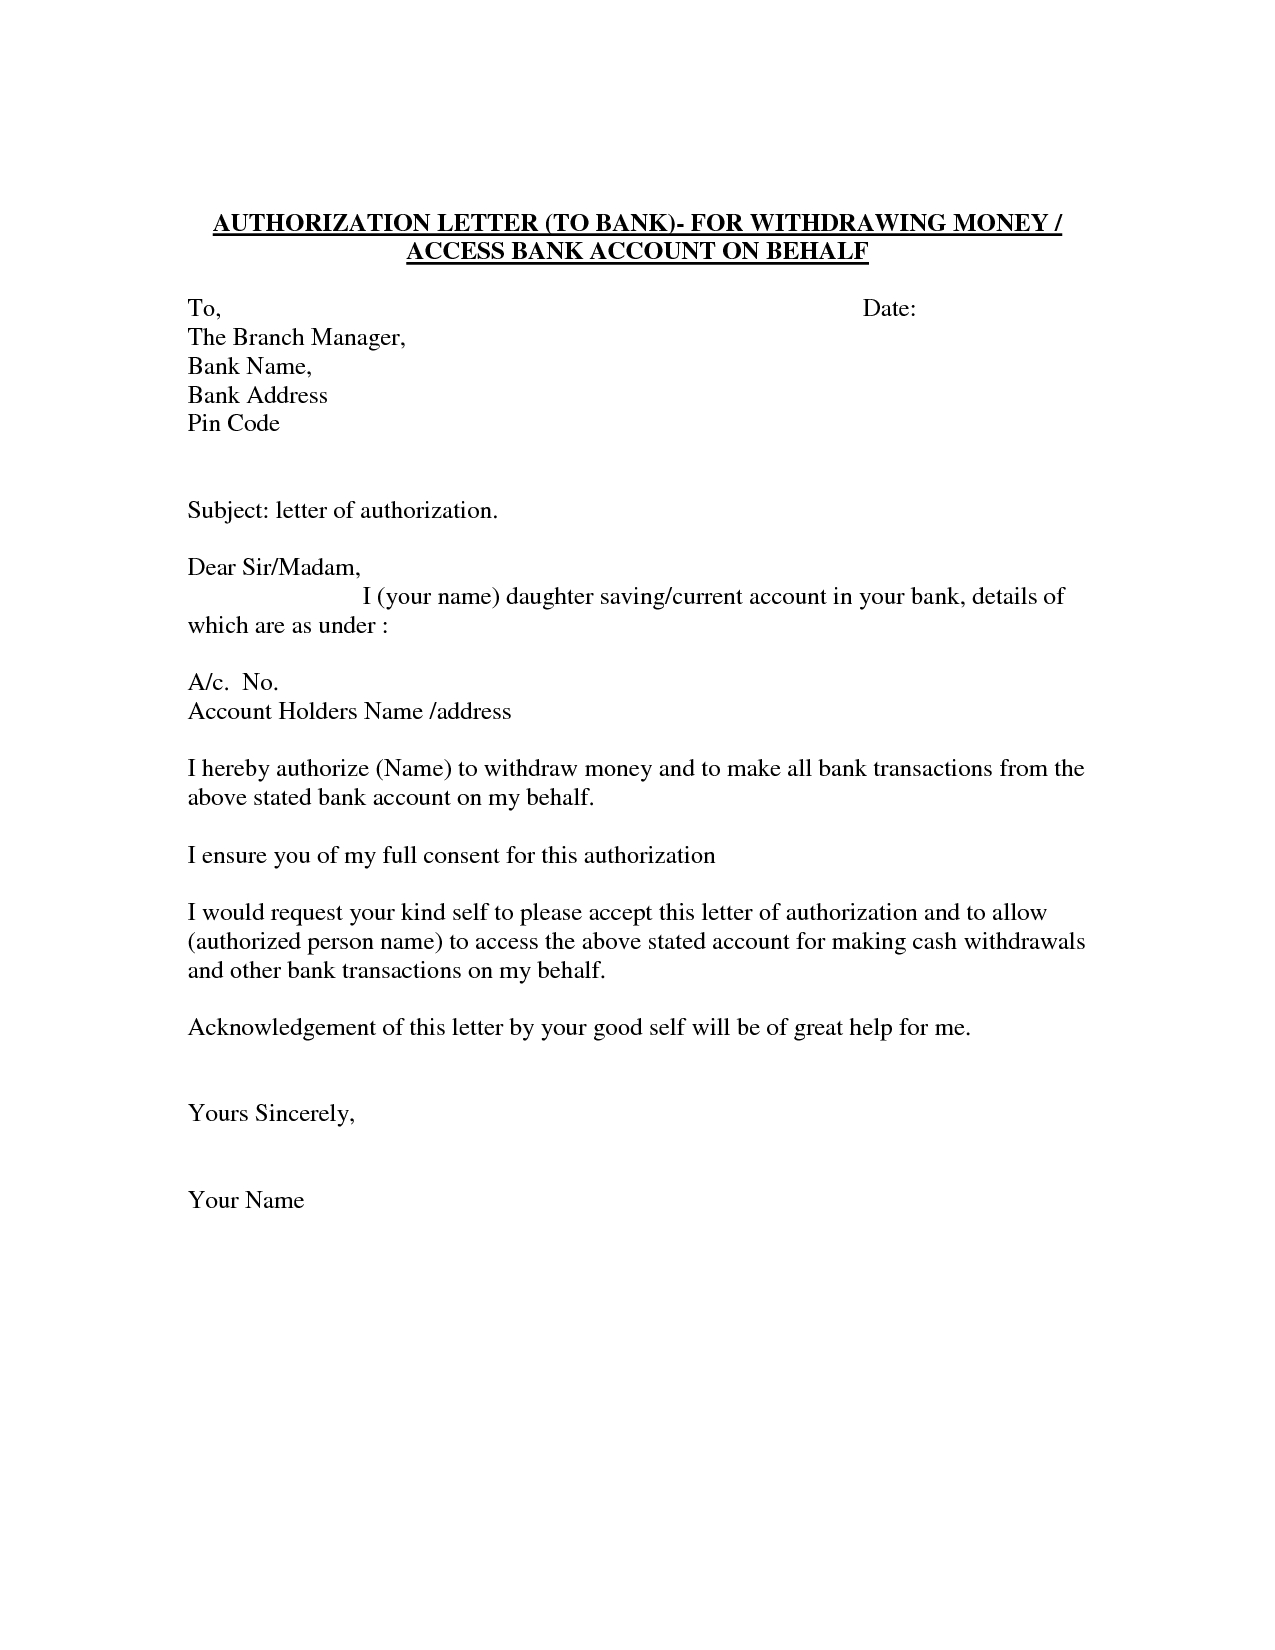 Demand Letter Template - Authorization Letter Template Best Car Galleryformal Letter Template